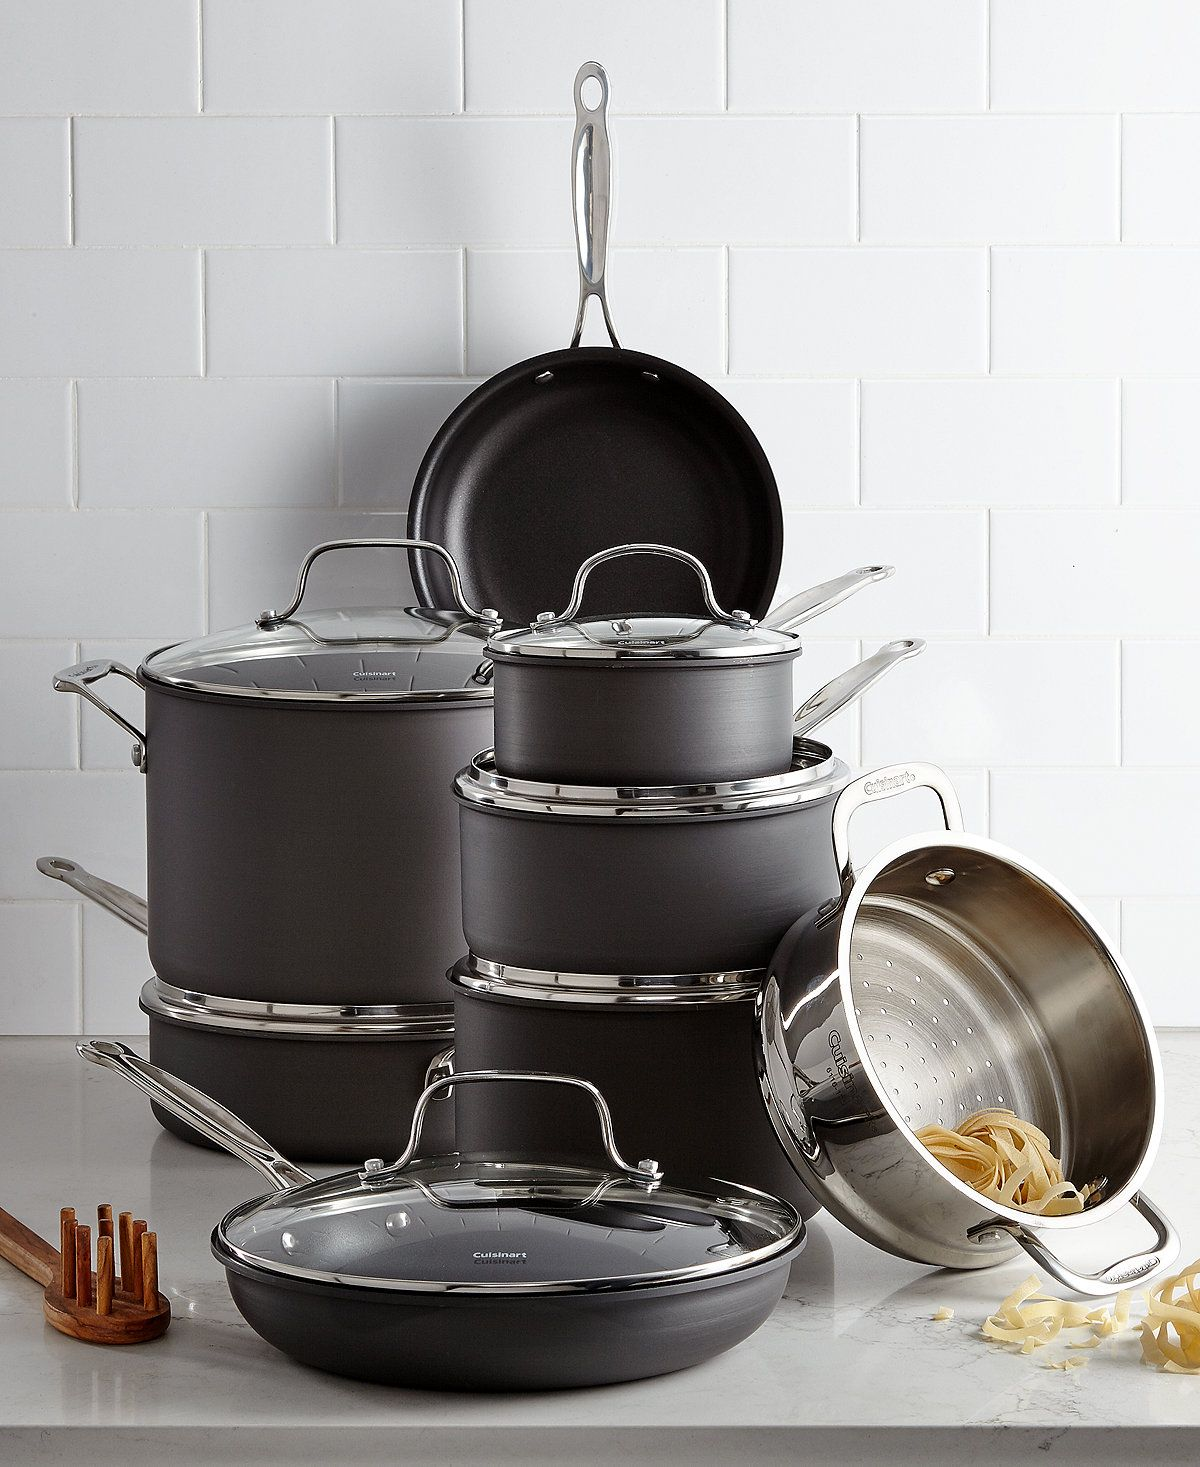 Cuisinart Chef's Classic HardAnodized 14Pc. Cookware Set